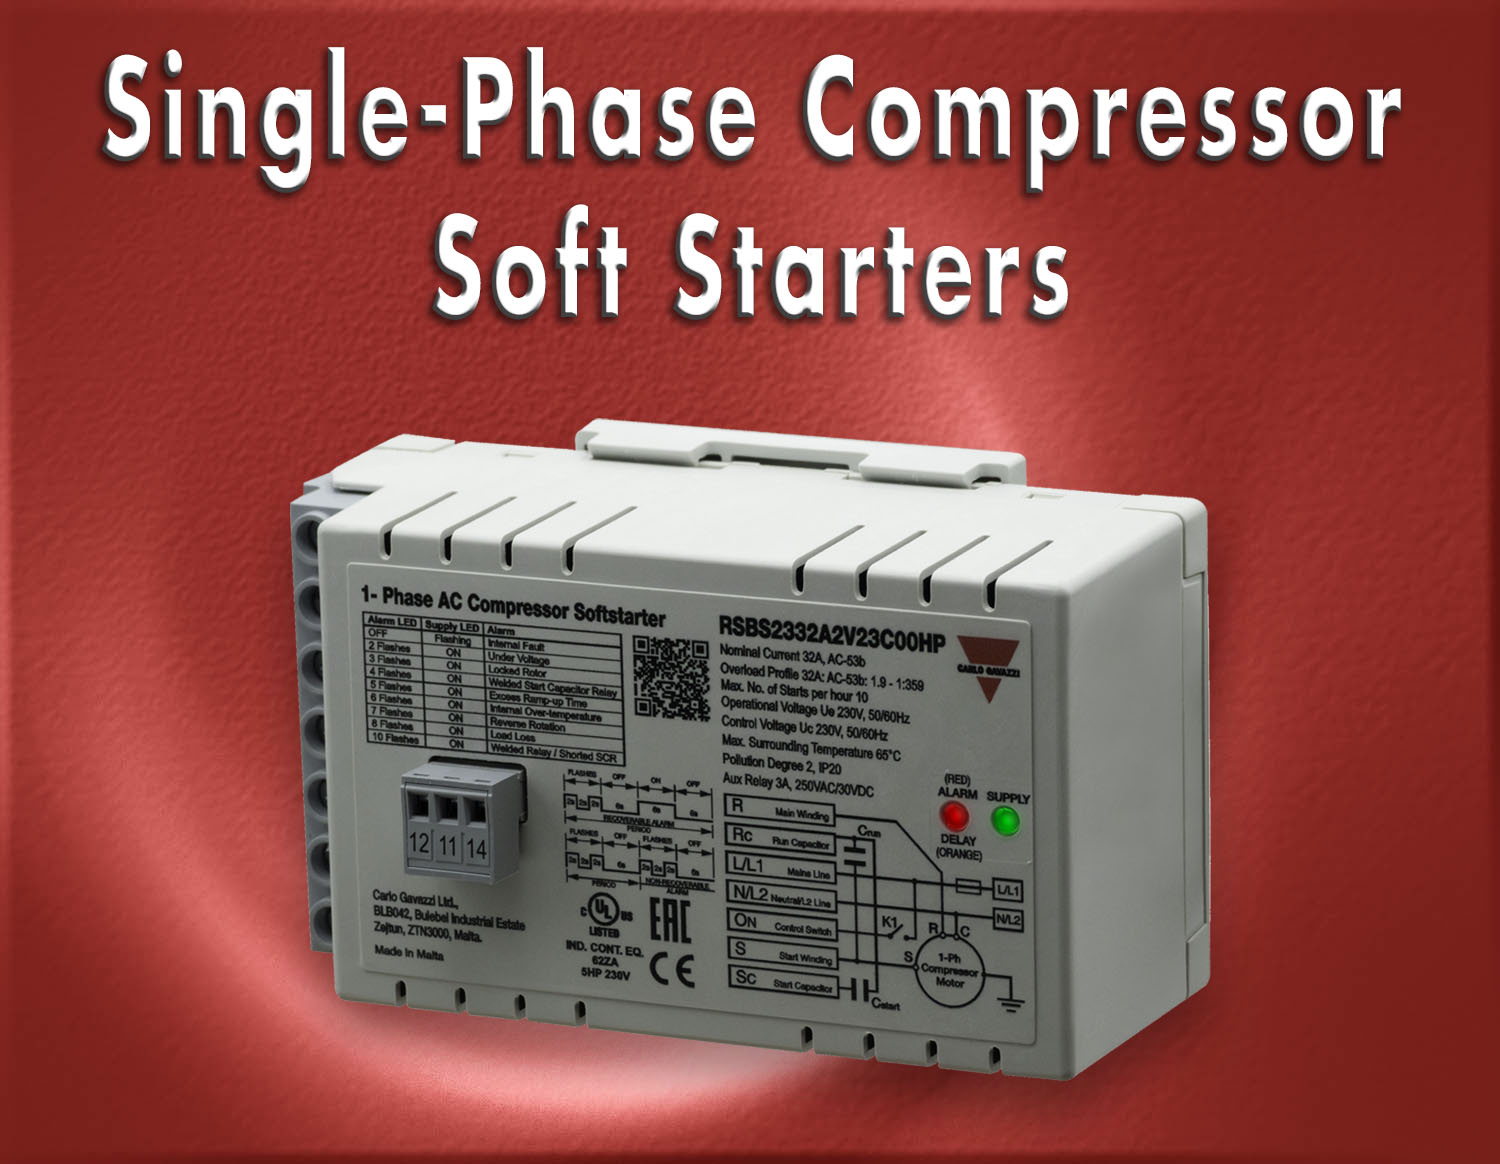 RSBS Series Single-Phase Compressor Soft Starters